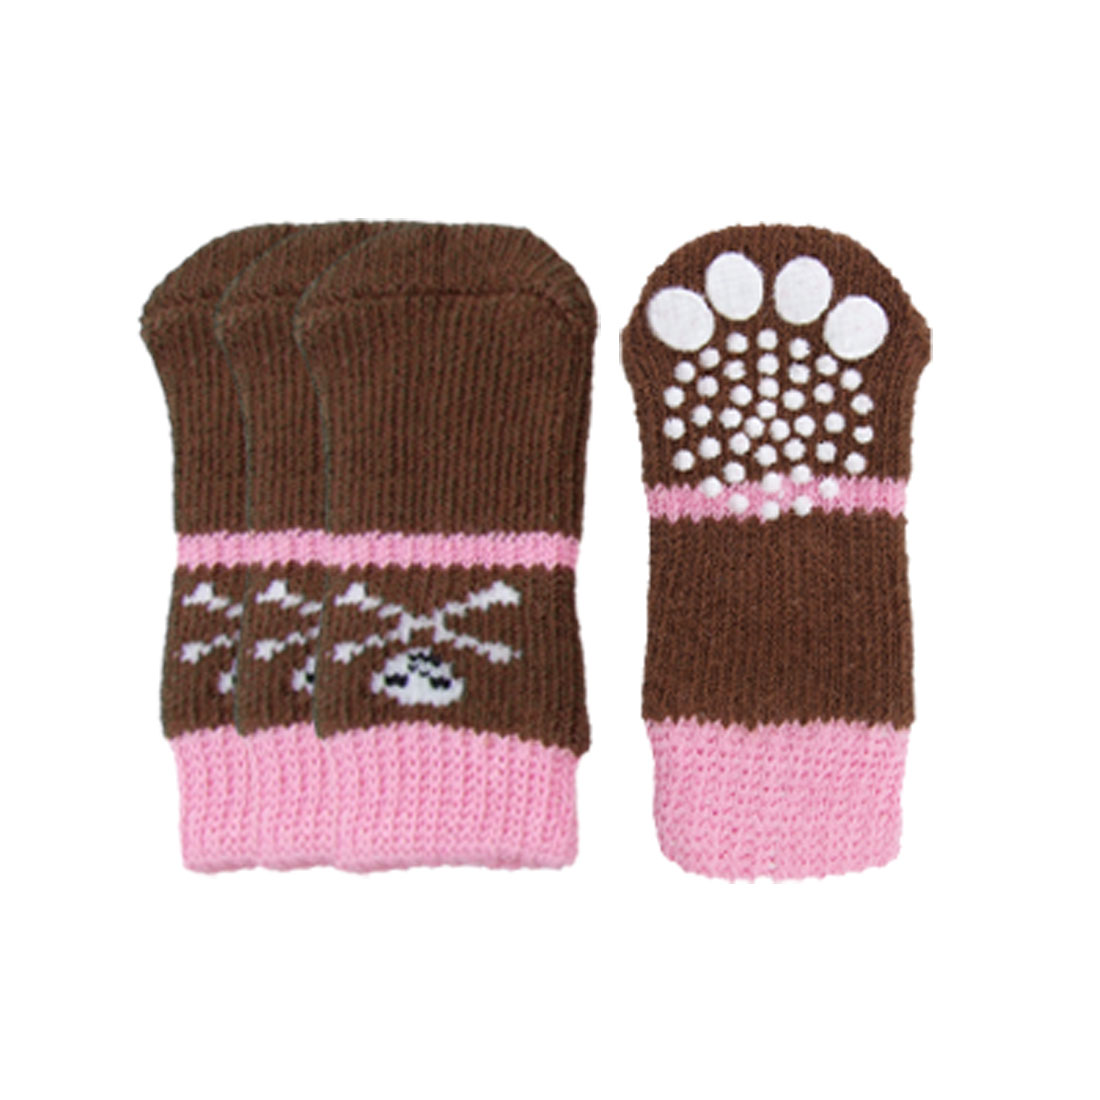 Puppy Crossbone Skull Pattern Elastic Socks Pink Brown